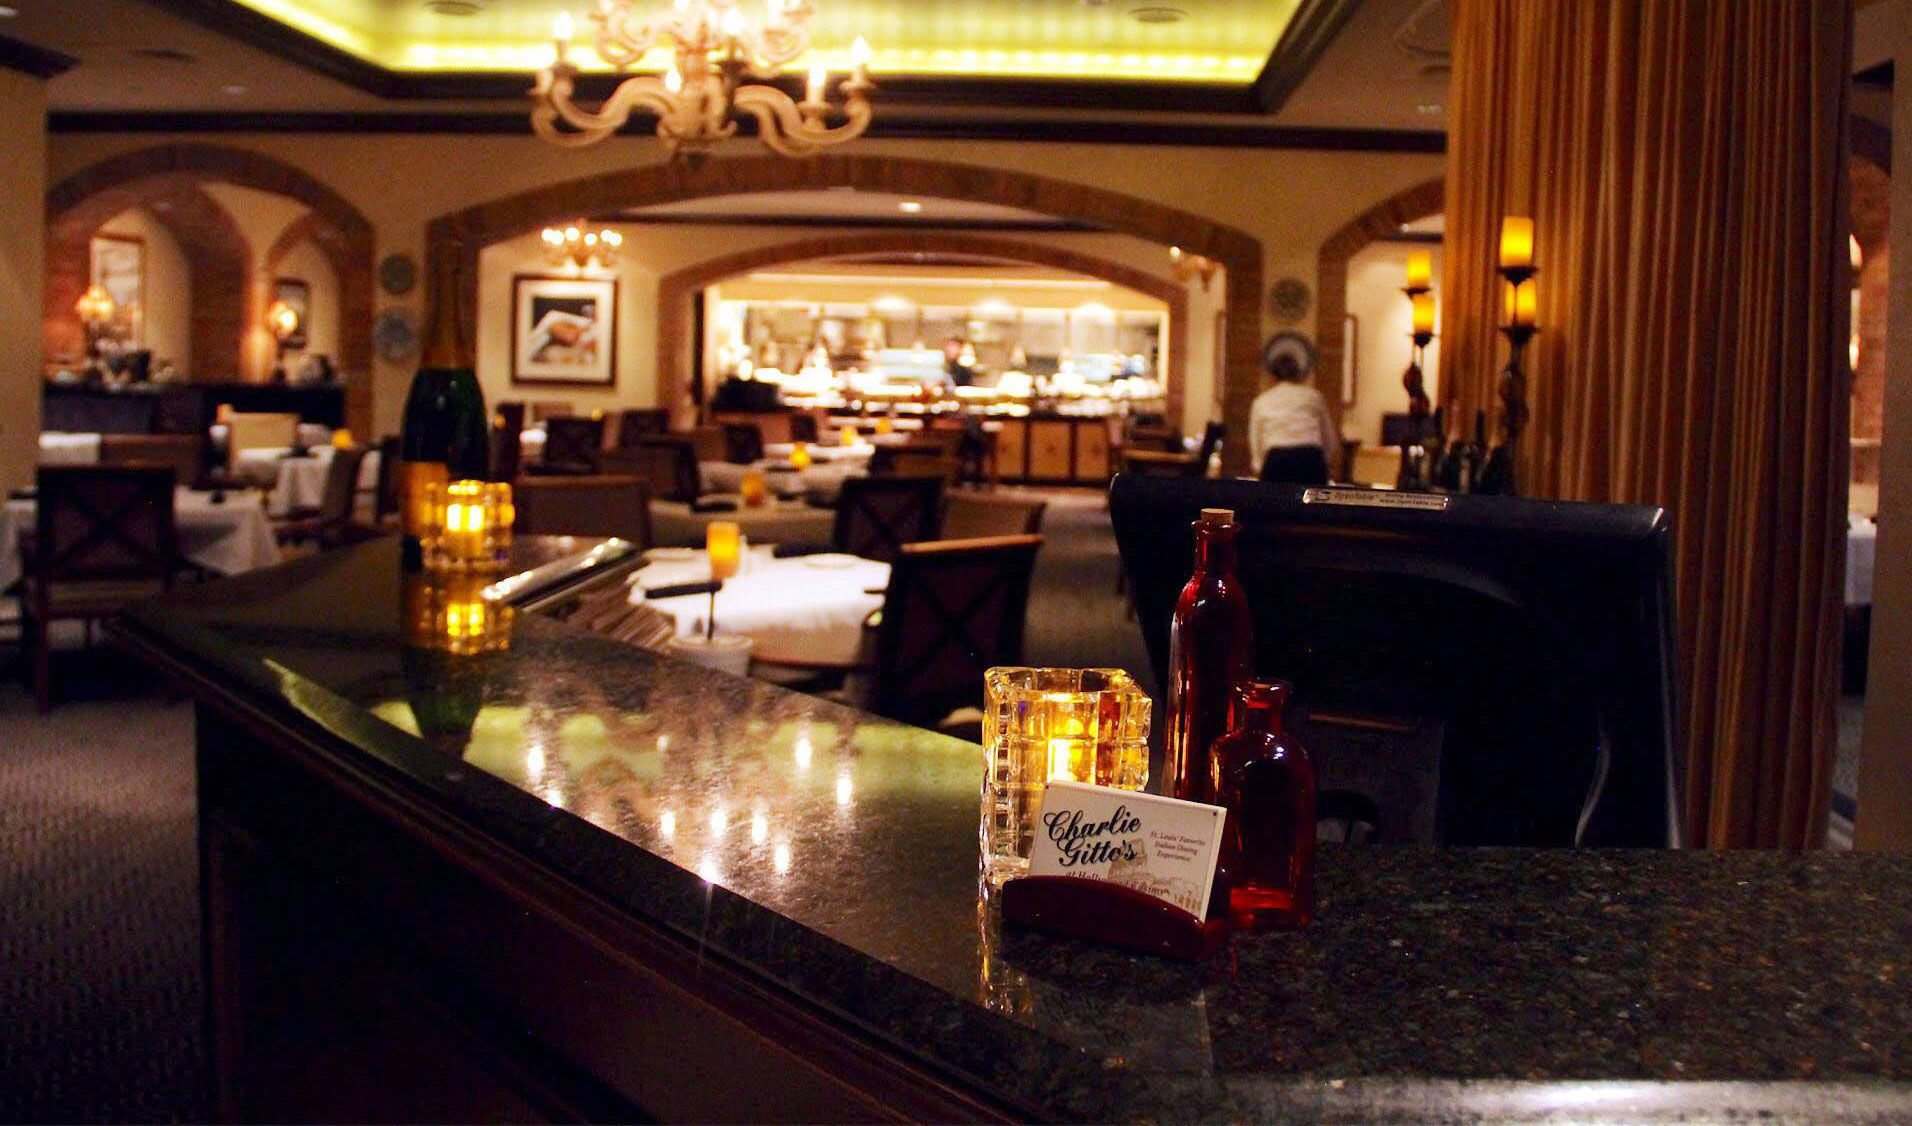 Charlie Gittou0027s Restaurant In St Louis On The Hill, Hollywood Casino, And  Chesterfield Fine